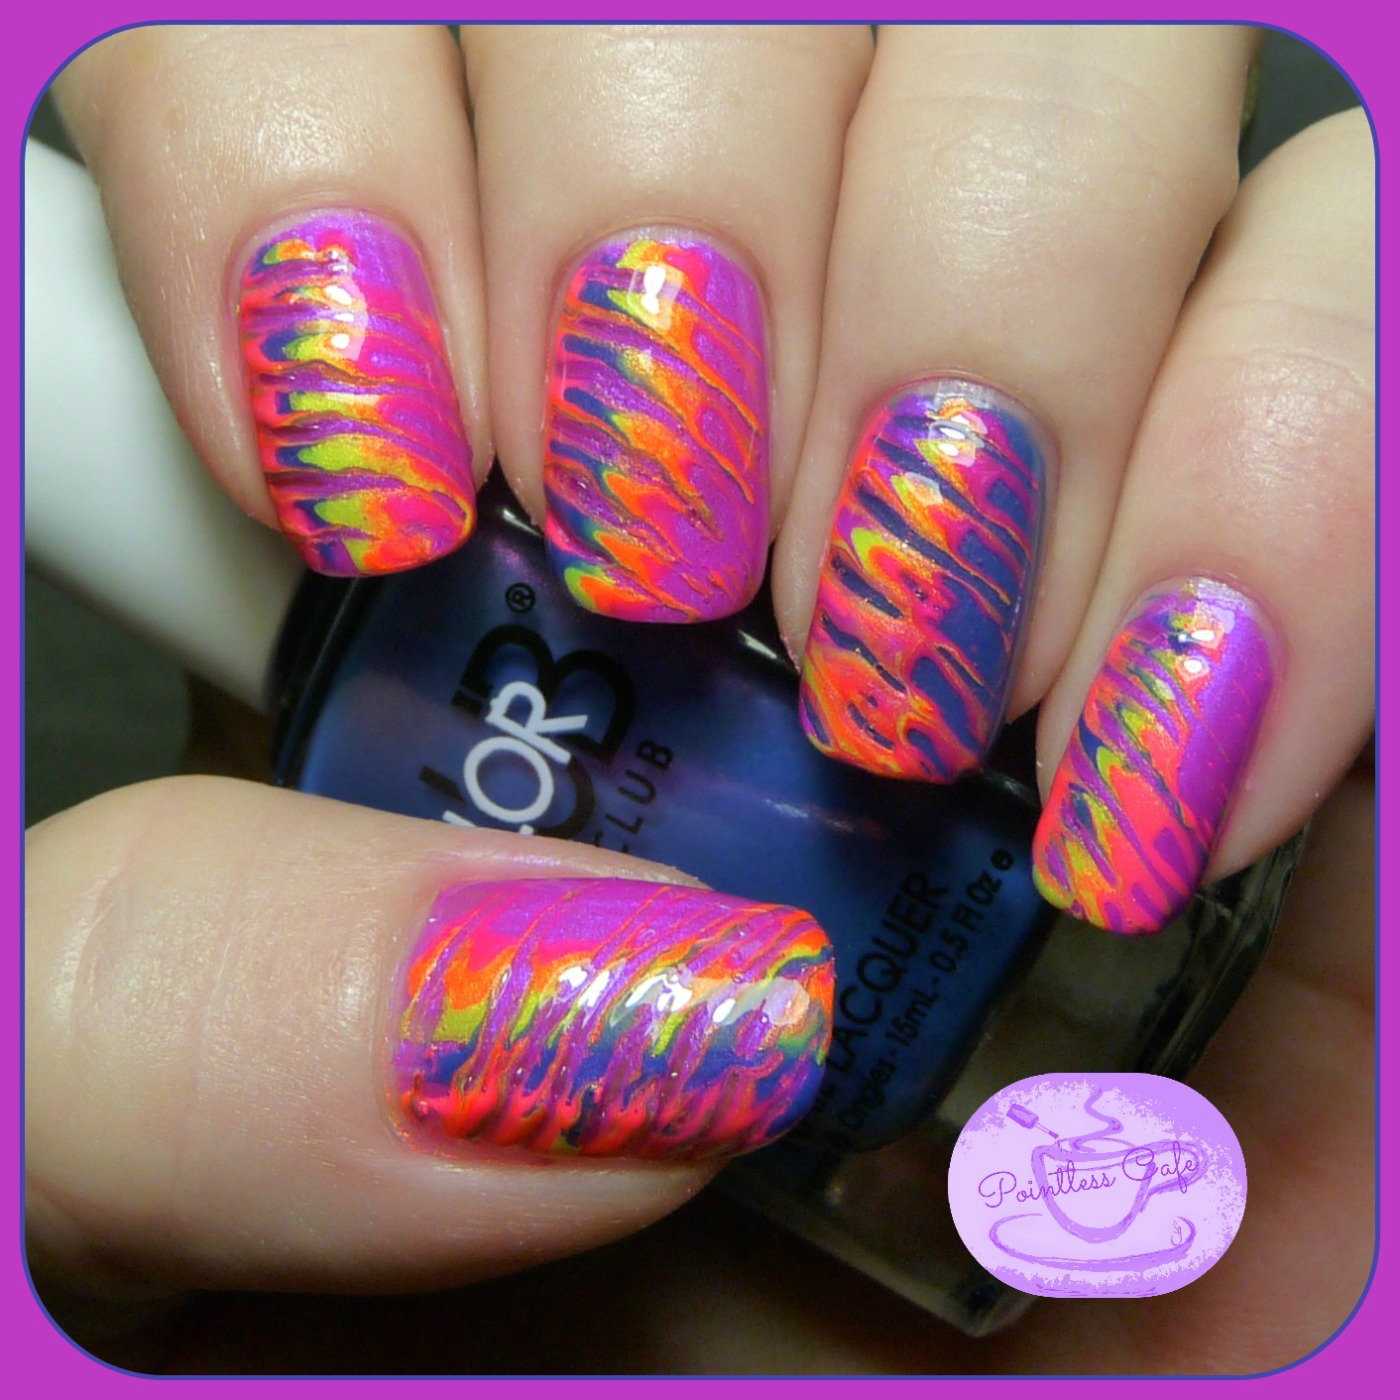 Cool nail designs with a toothpick easy nail designs art and design toothpicks nails toothpick nail art ideas easy view images prinsesfo Choice Image